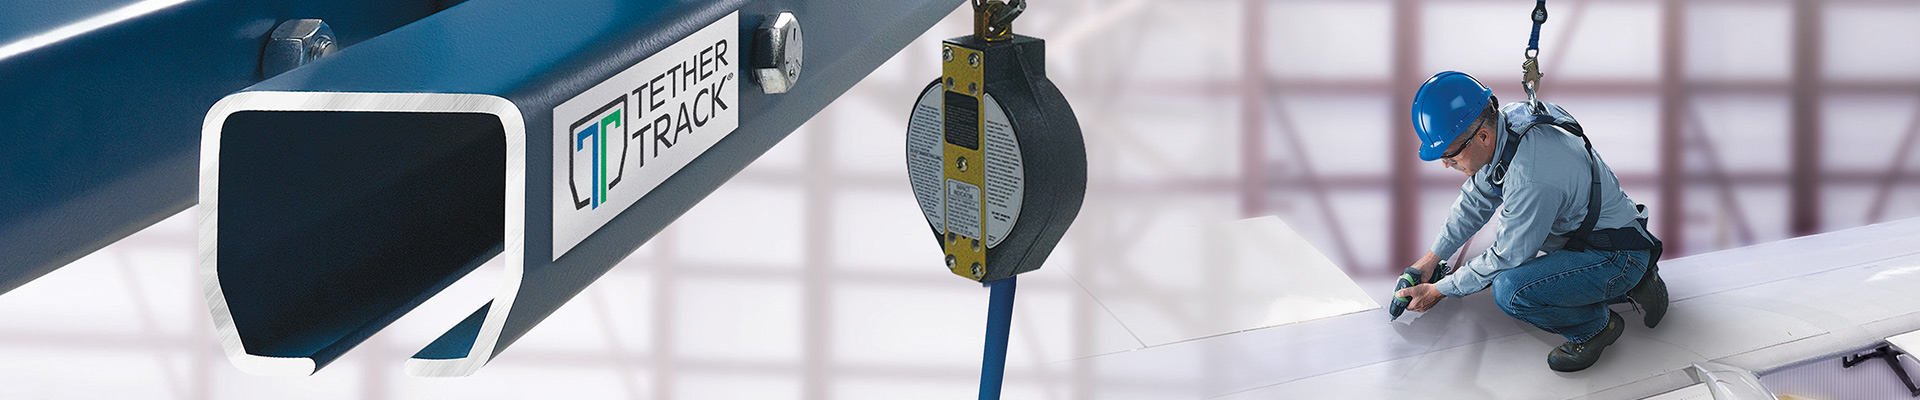 Tether Track fall protection systems